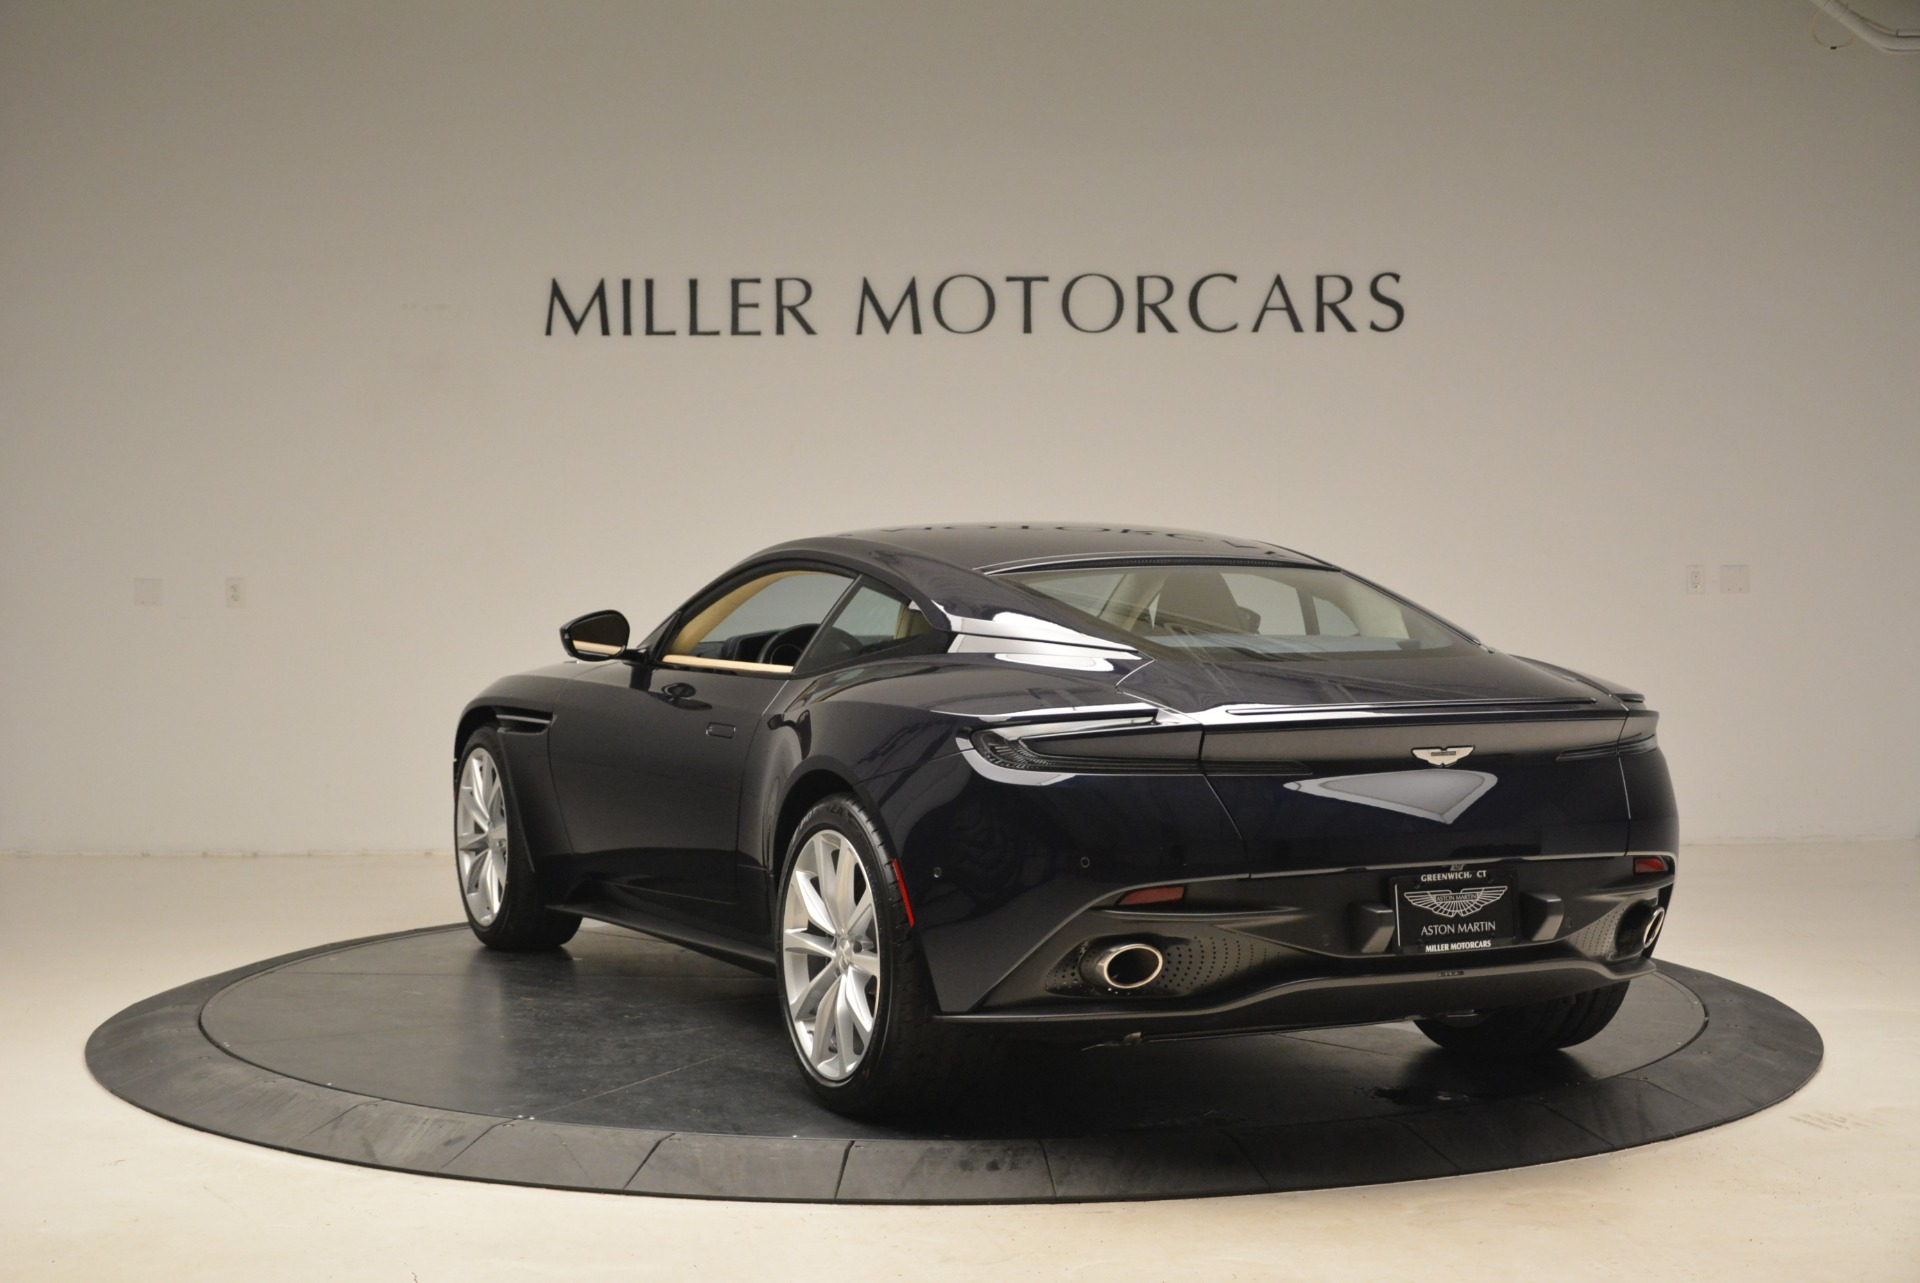 New 2018 Aston Martin DB11 V12 Coupe For Sale In Westport, CT 2227_p5